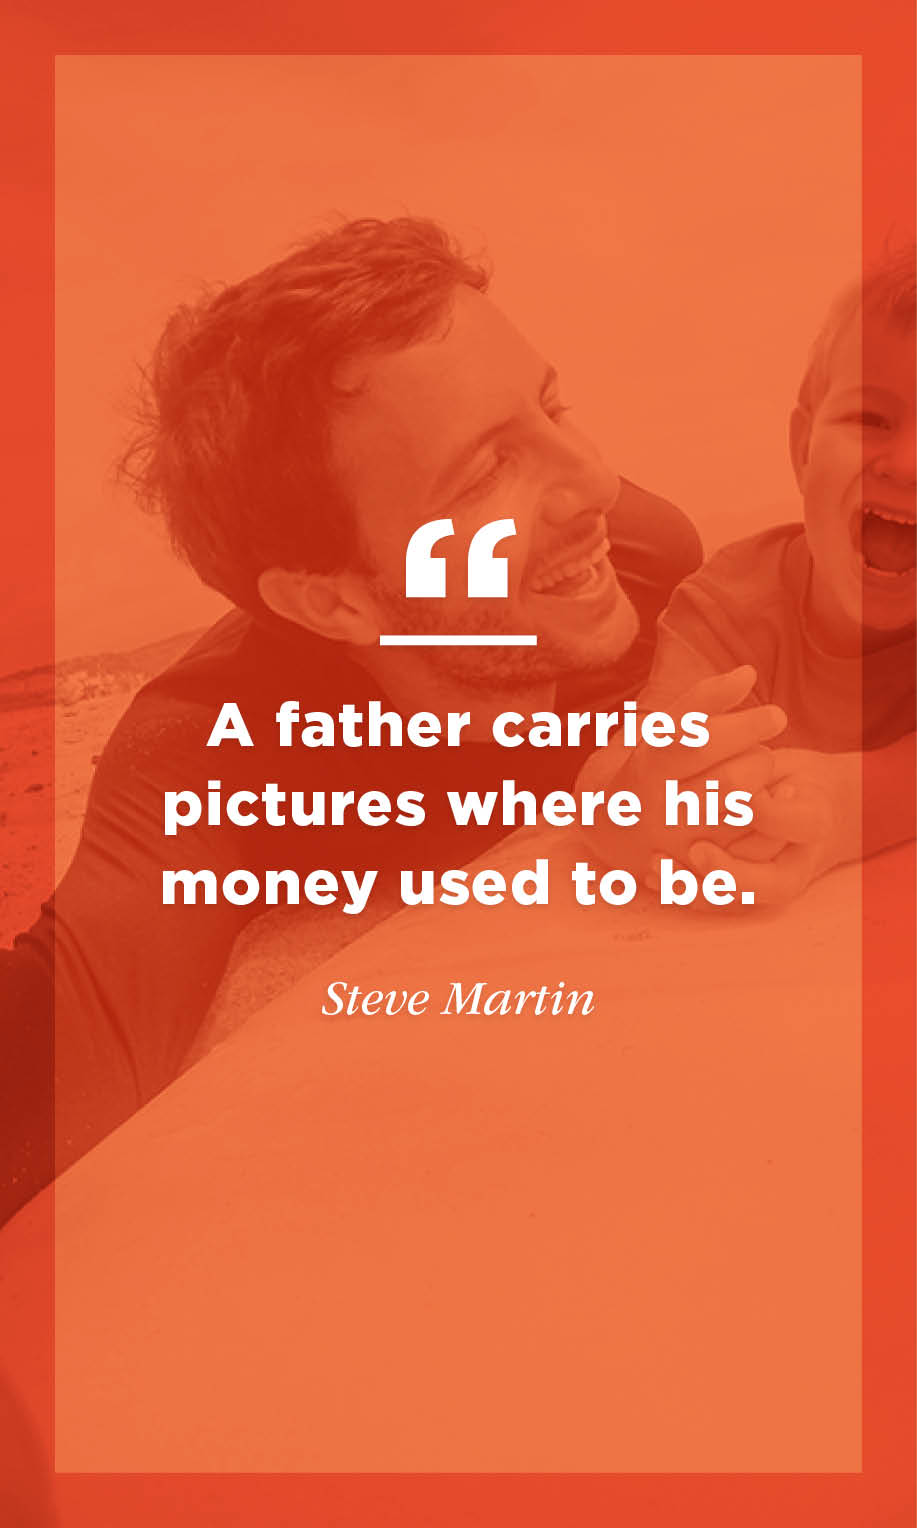 Happy Fathers Day Quotes For 2018 Shutterfly